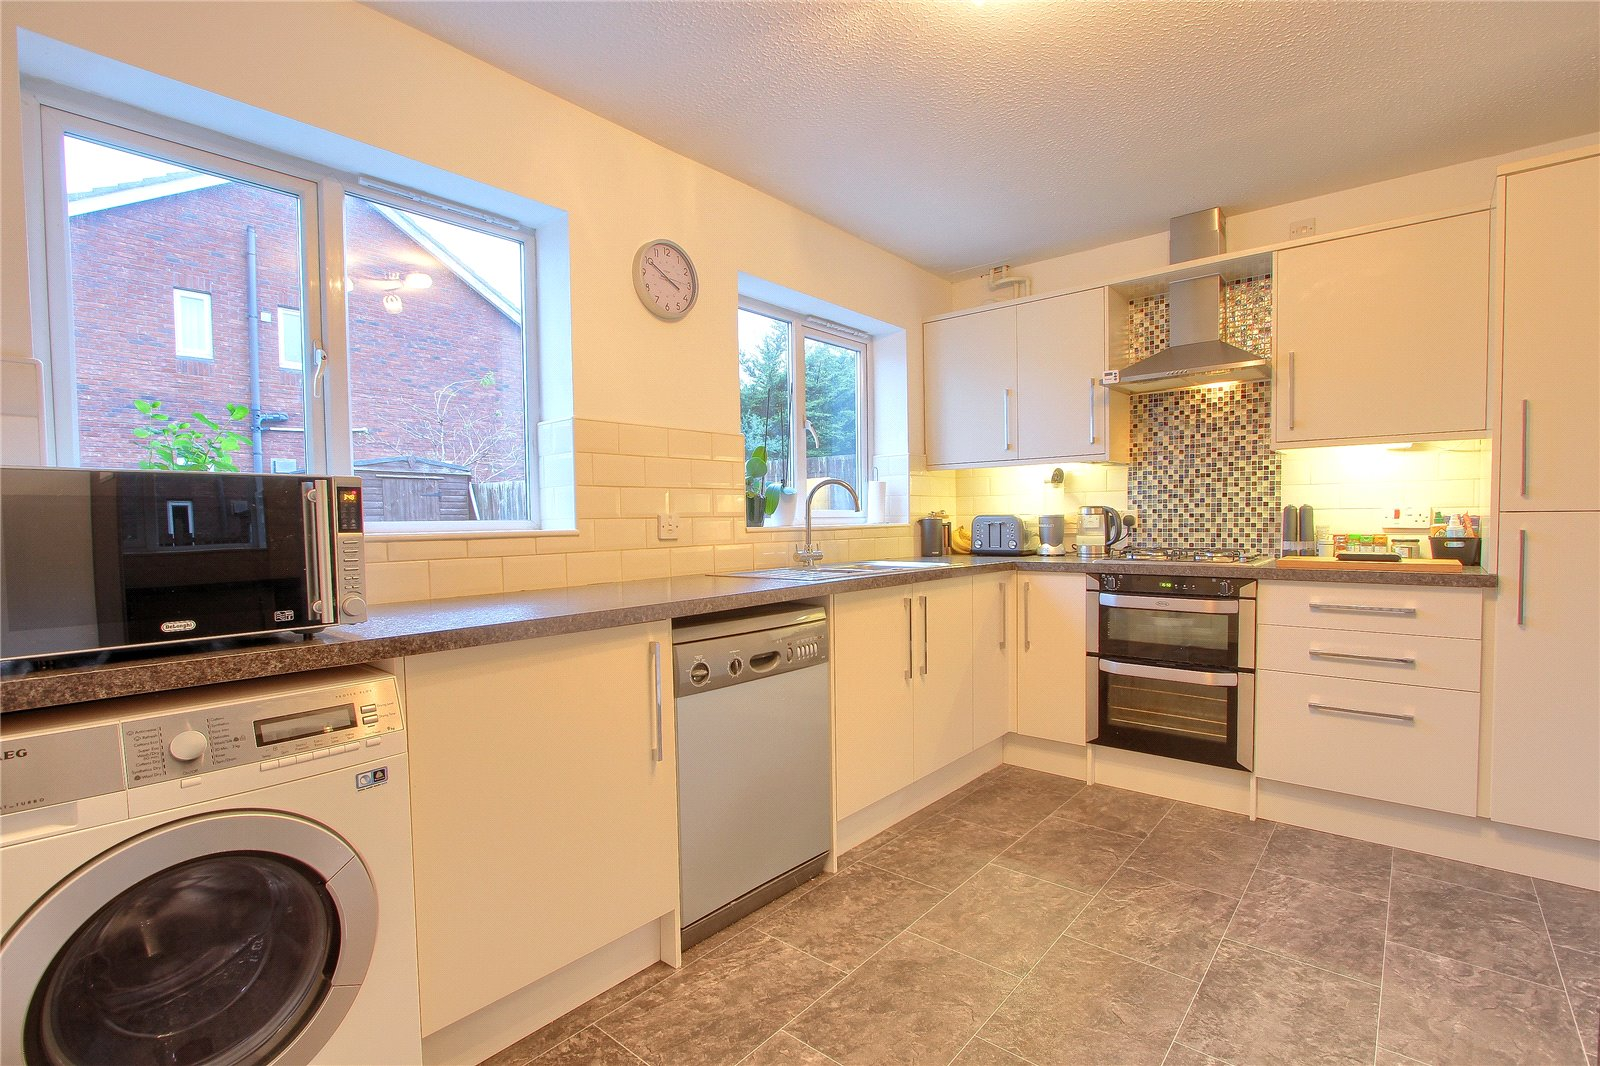 4 bed house for sale in Trevarrian Drive, Redcar  - Property Image 6